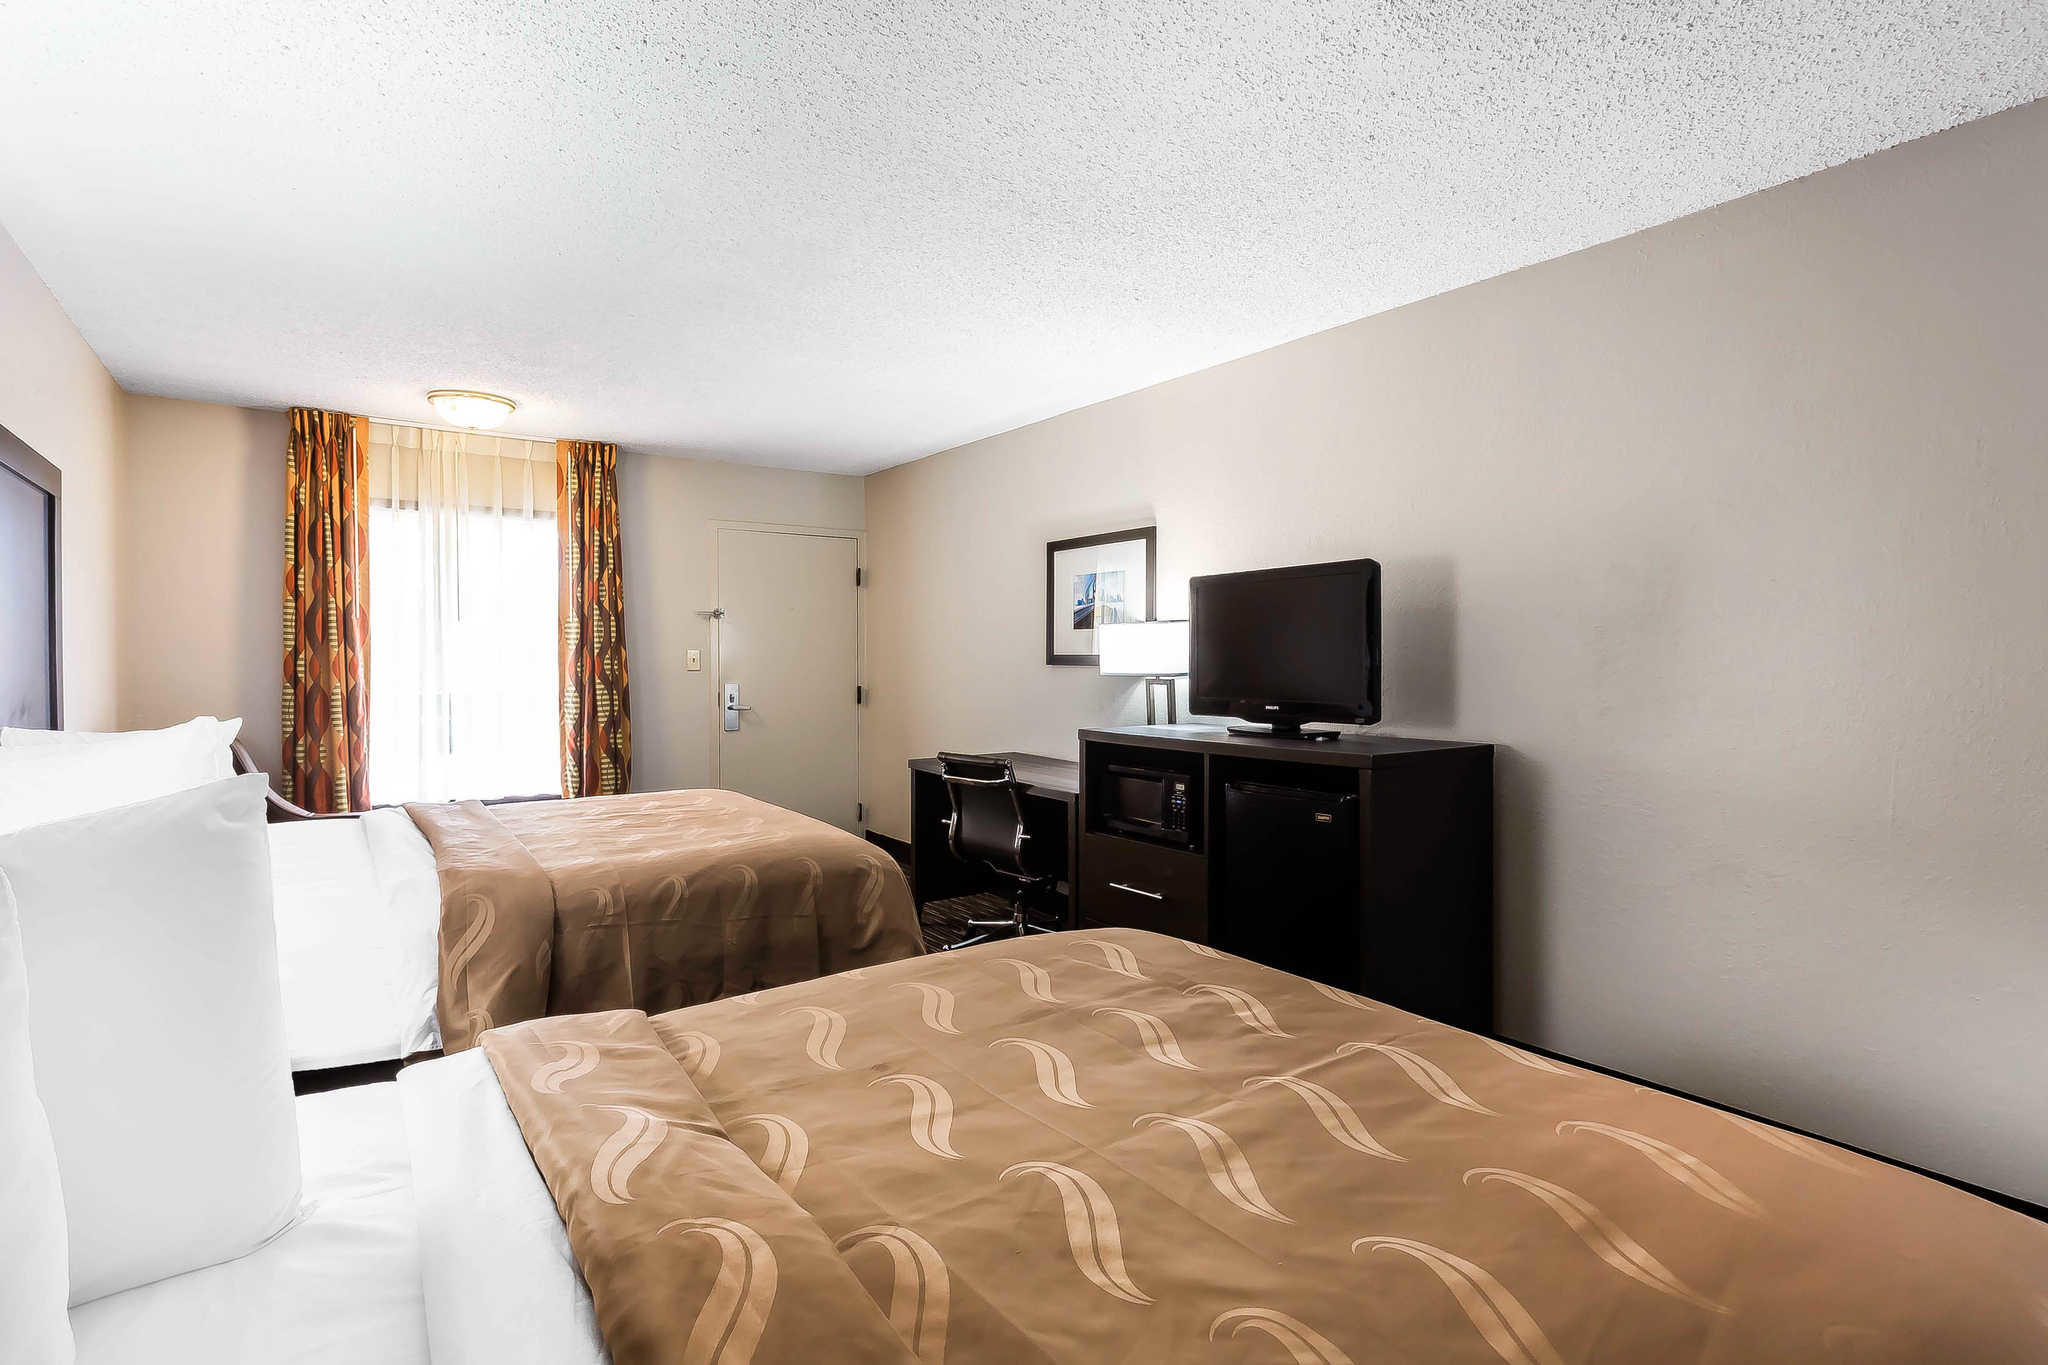 Quality Inn & Suites Mooresville-Lake Norman image 19